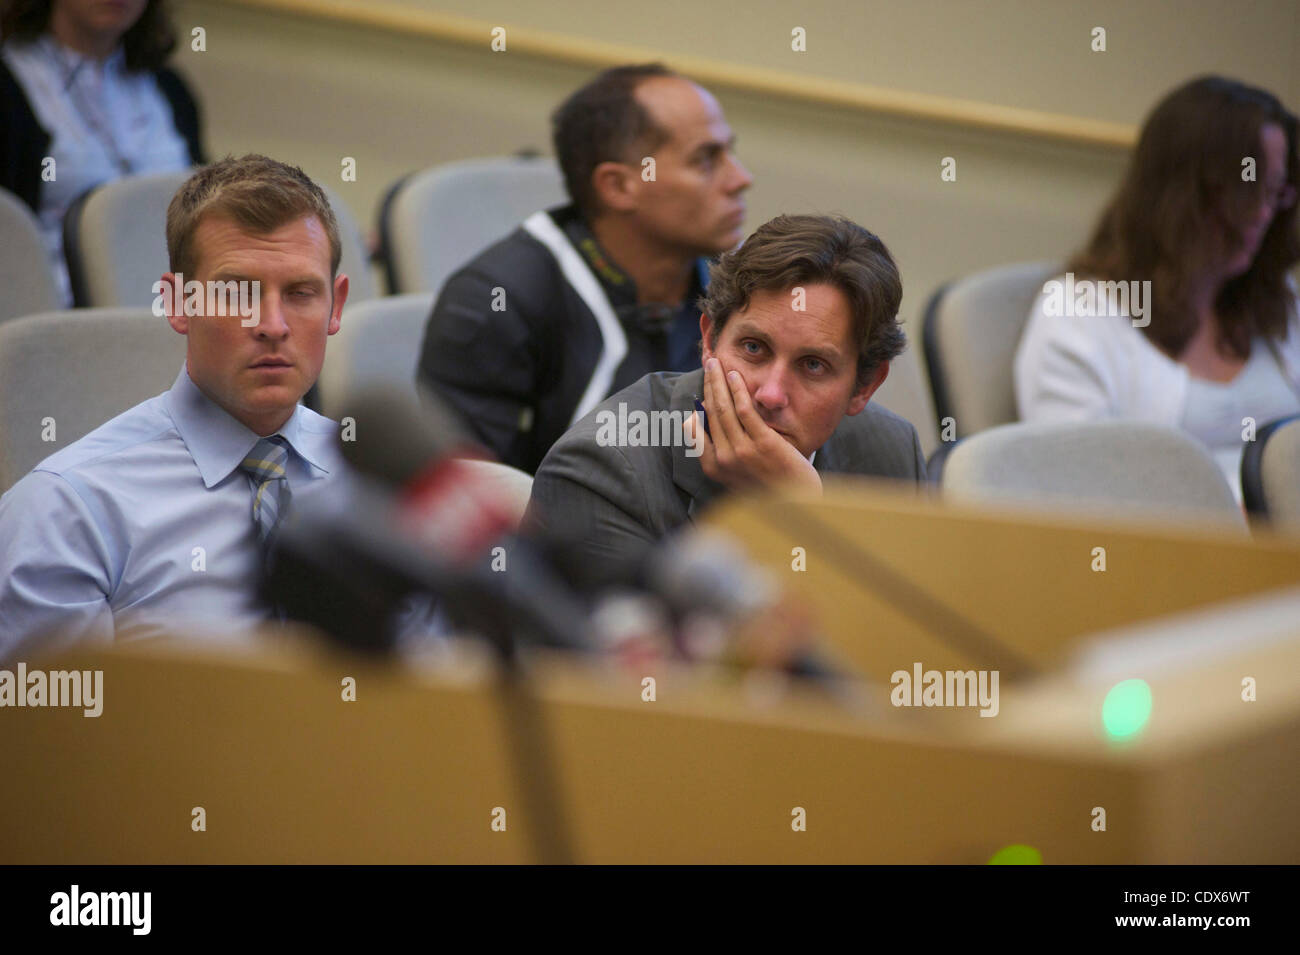 KTLA news reporter Jaime Chyambers  The guy at left is from